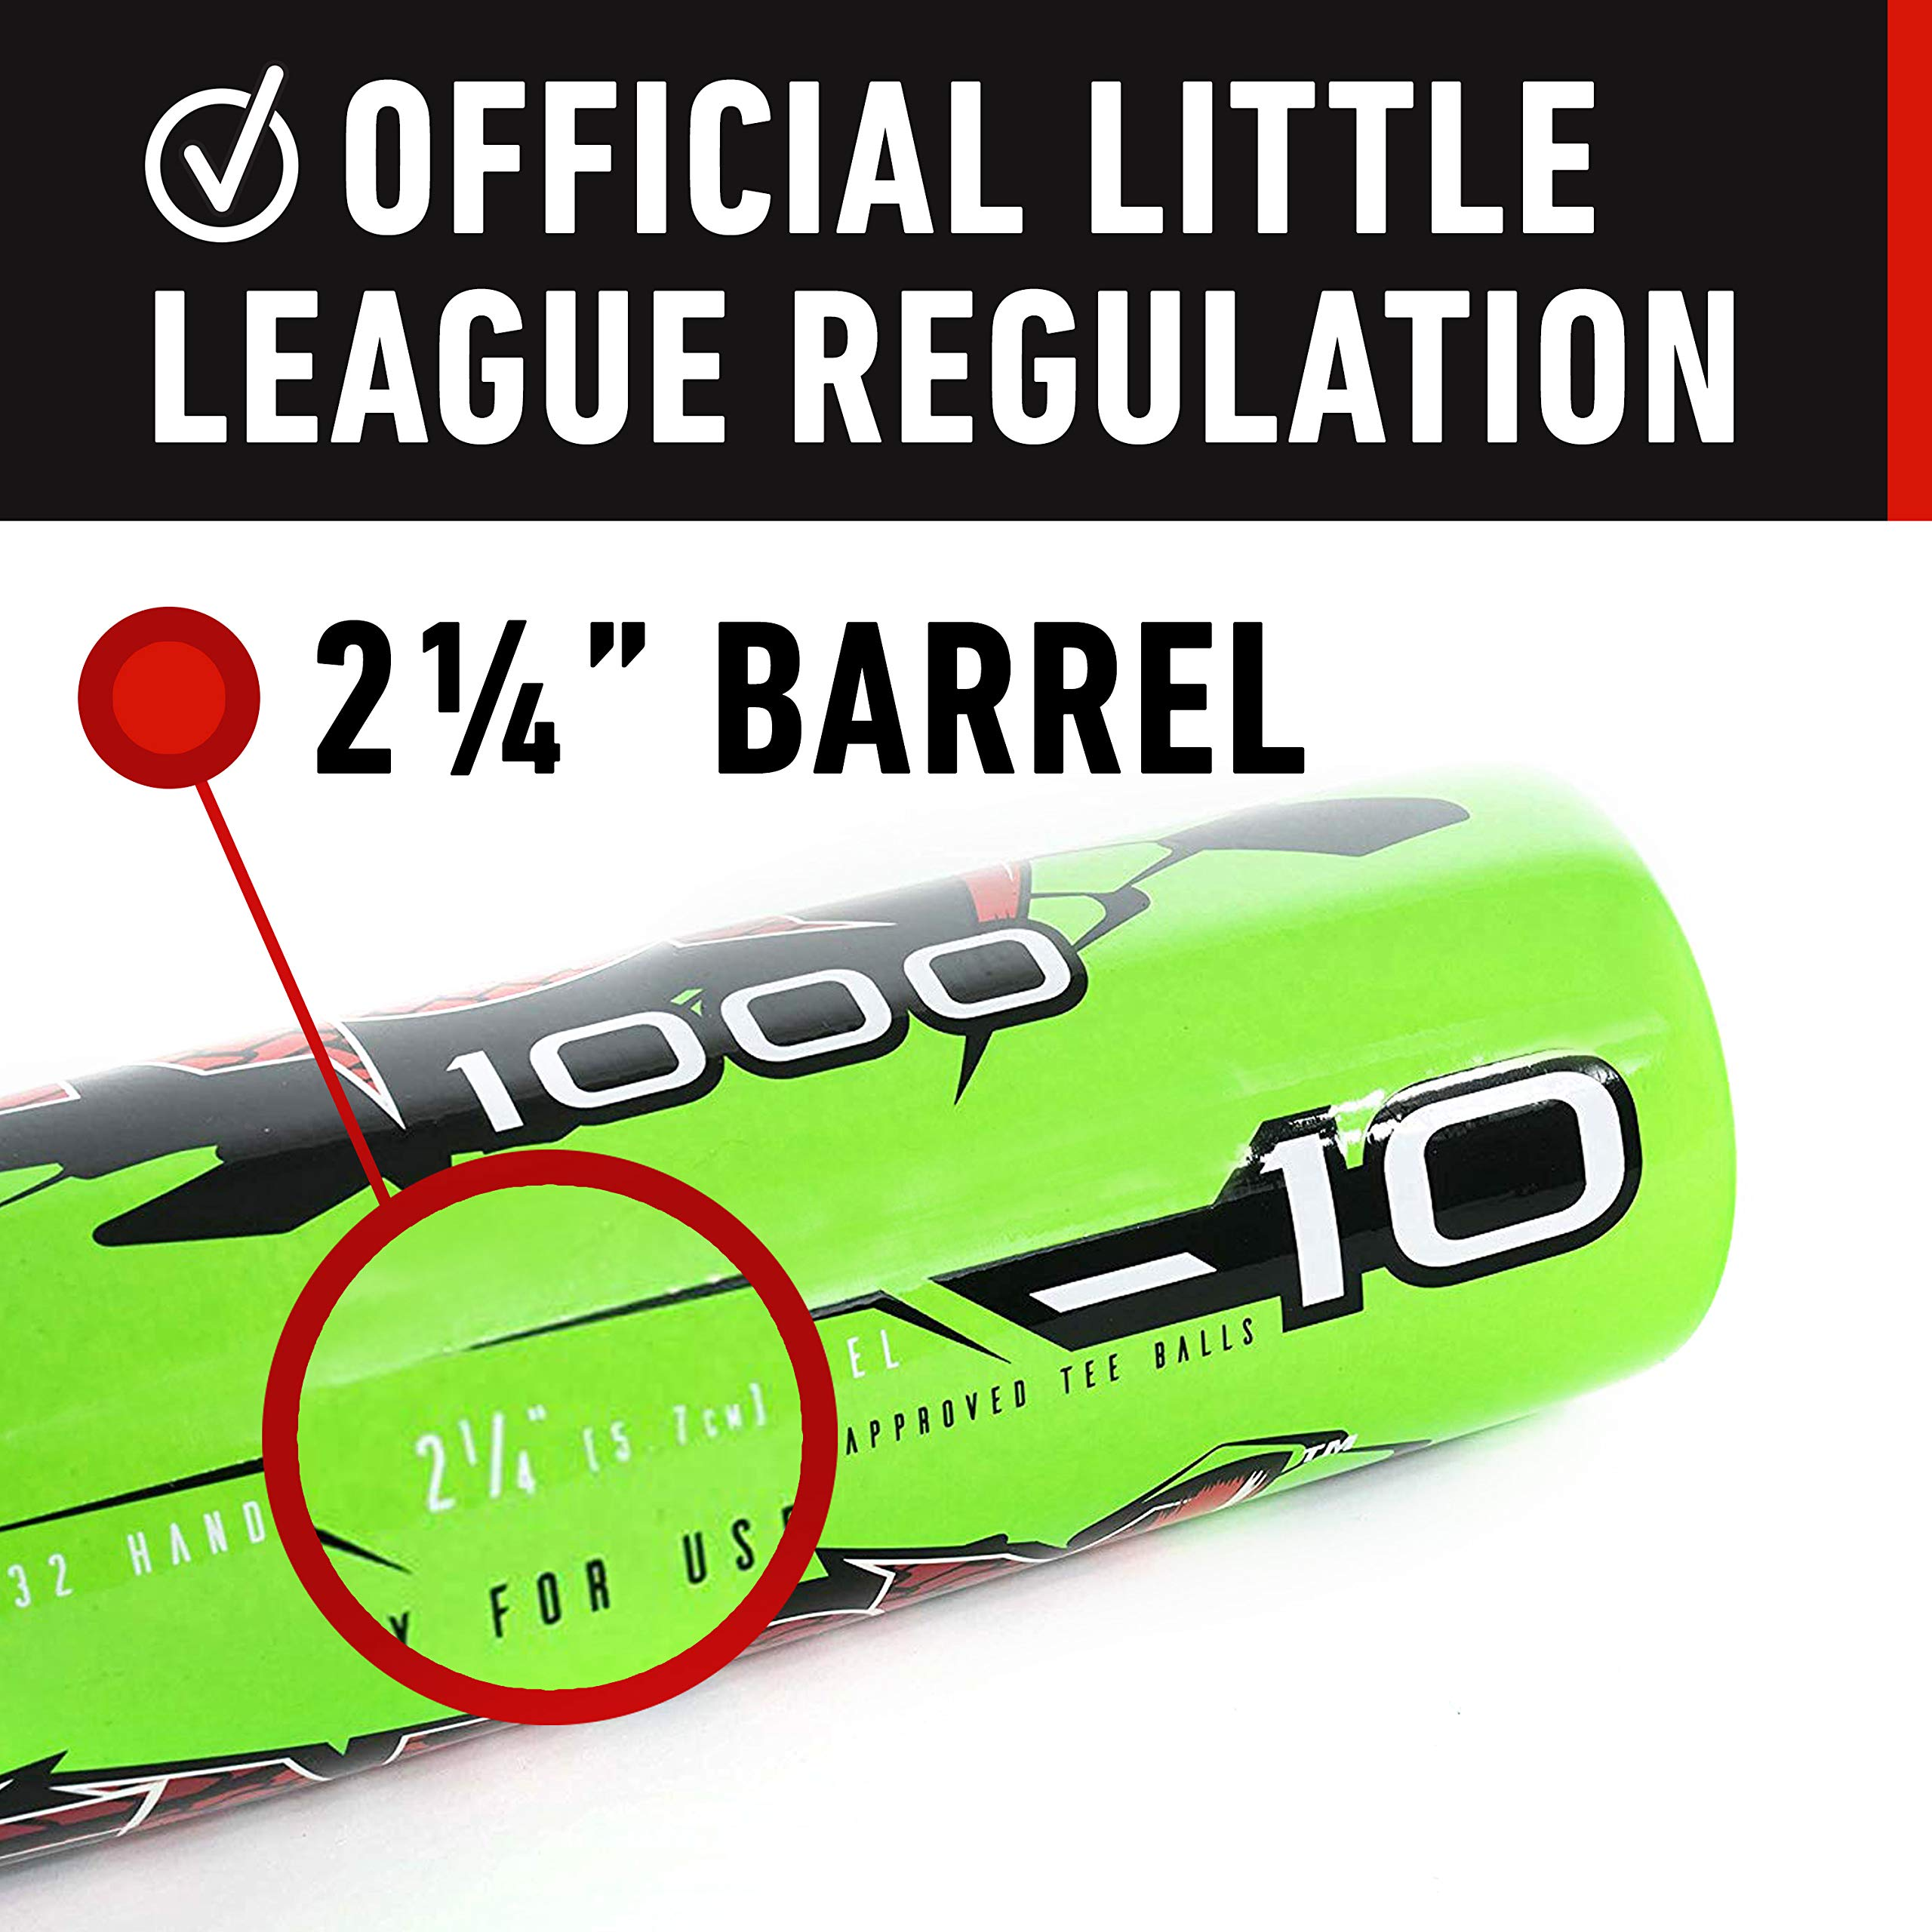 Franklin Sports Venom 1000 Official Teeball Bat - 26'' (-10) - Perfect for Youth Baseball and Teeball by Franklin Sports (Image #4)